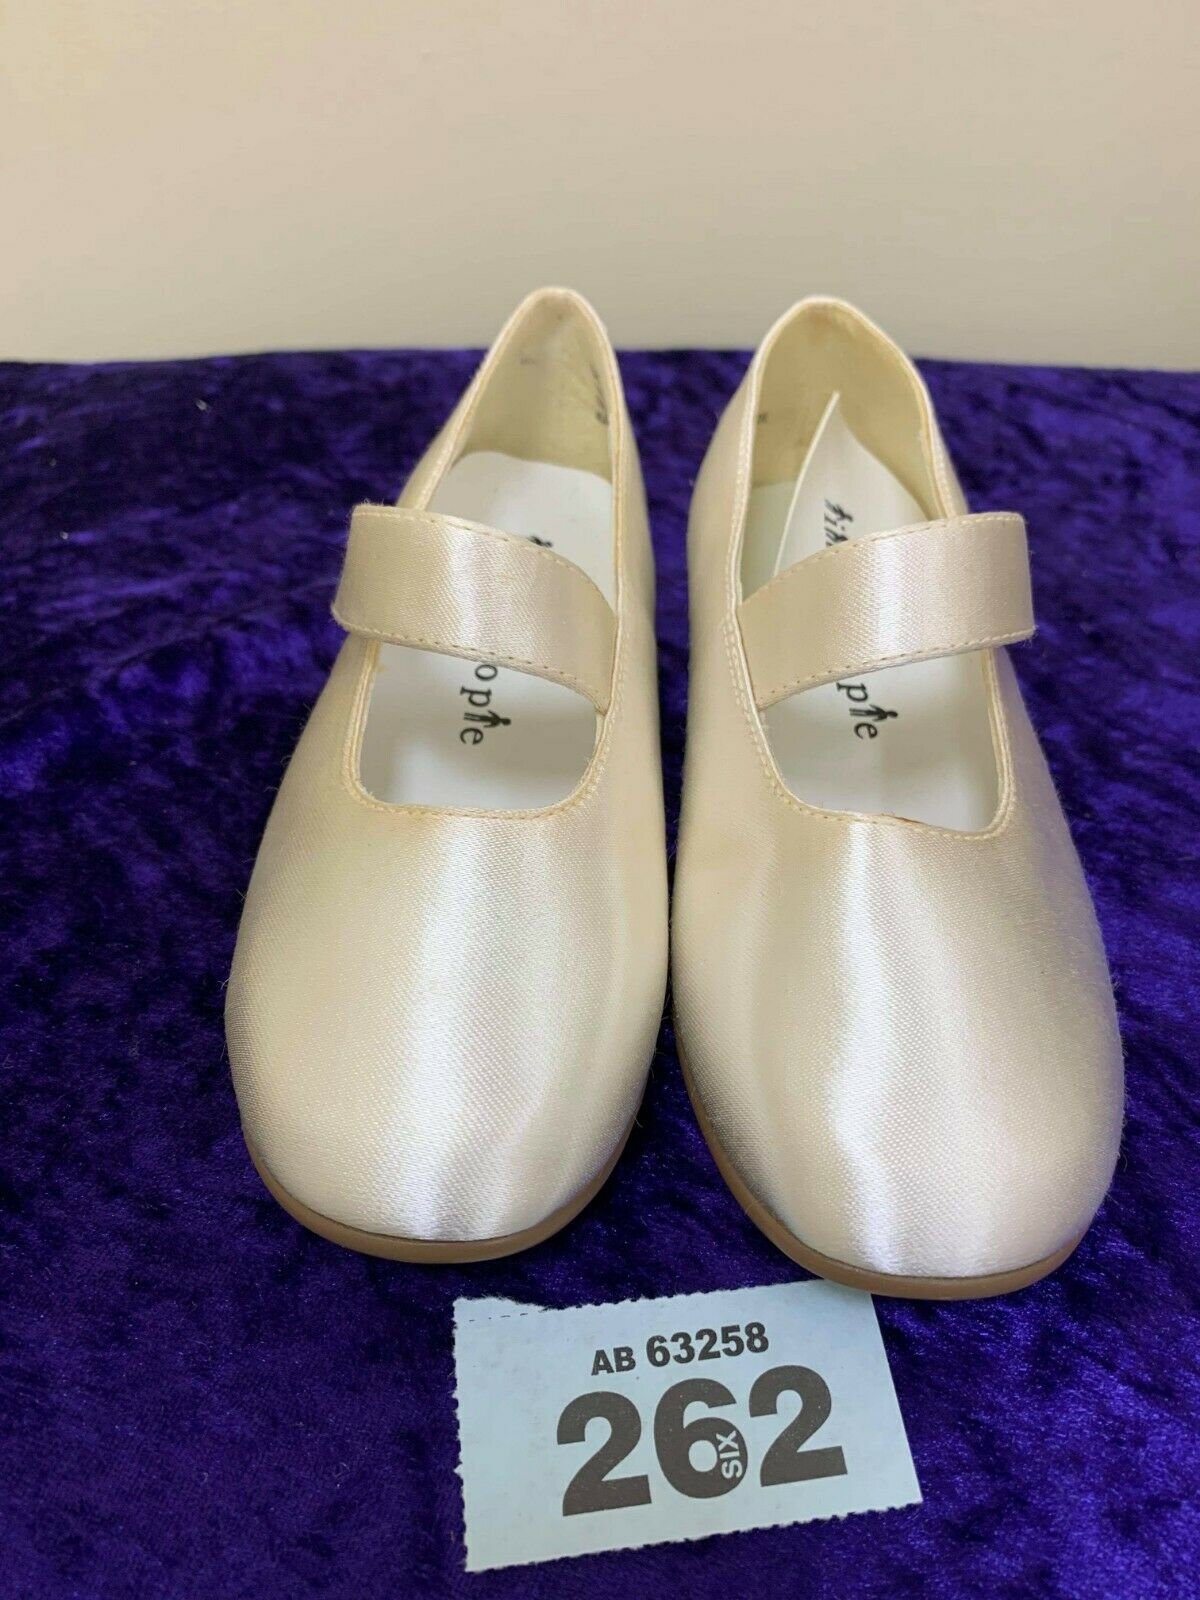 New in box childs ivory wedding/party shoes size 7 code 262 Style 2572